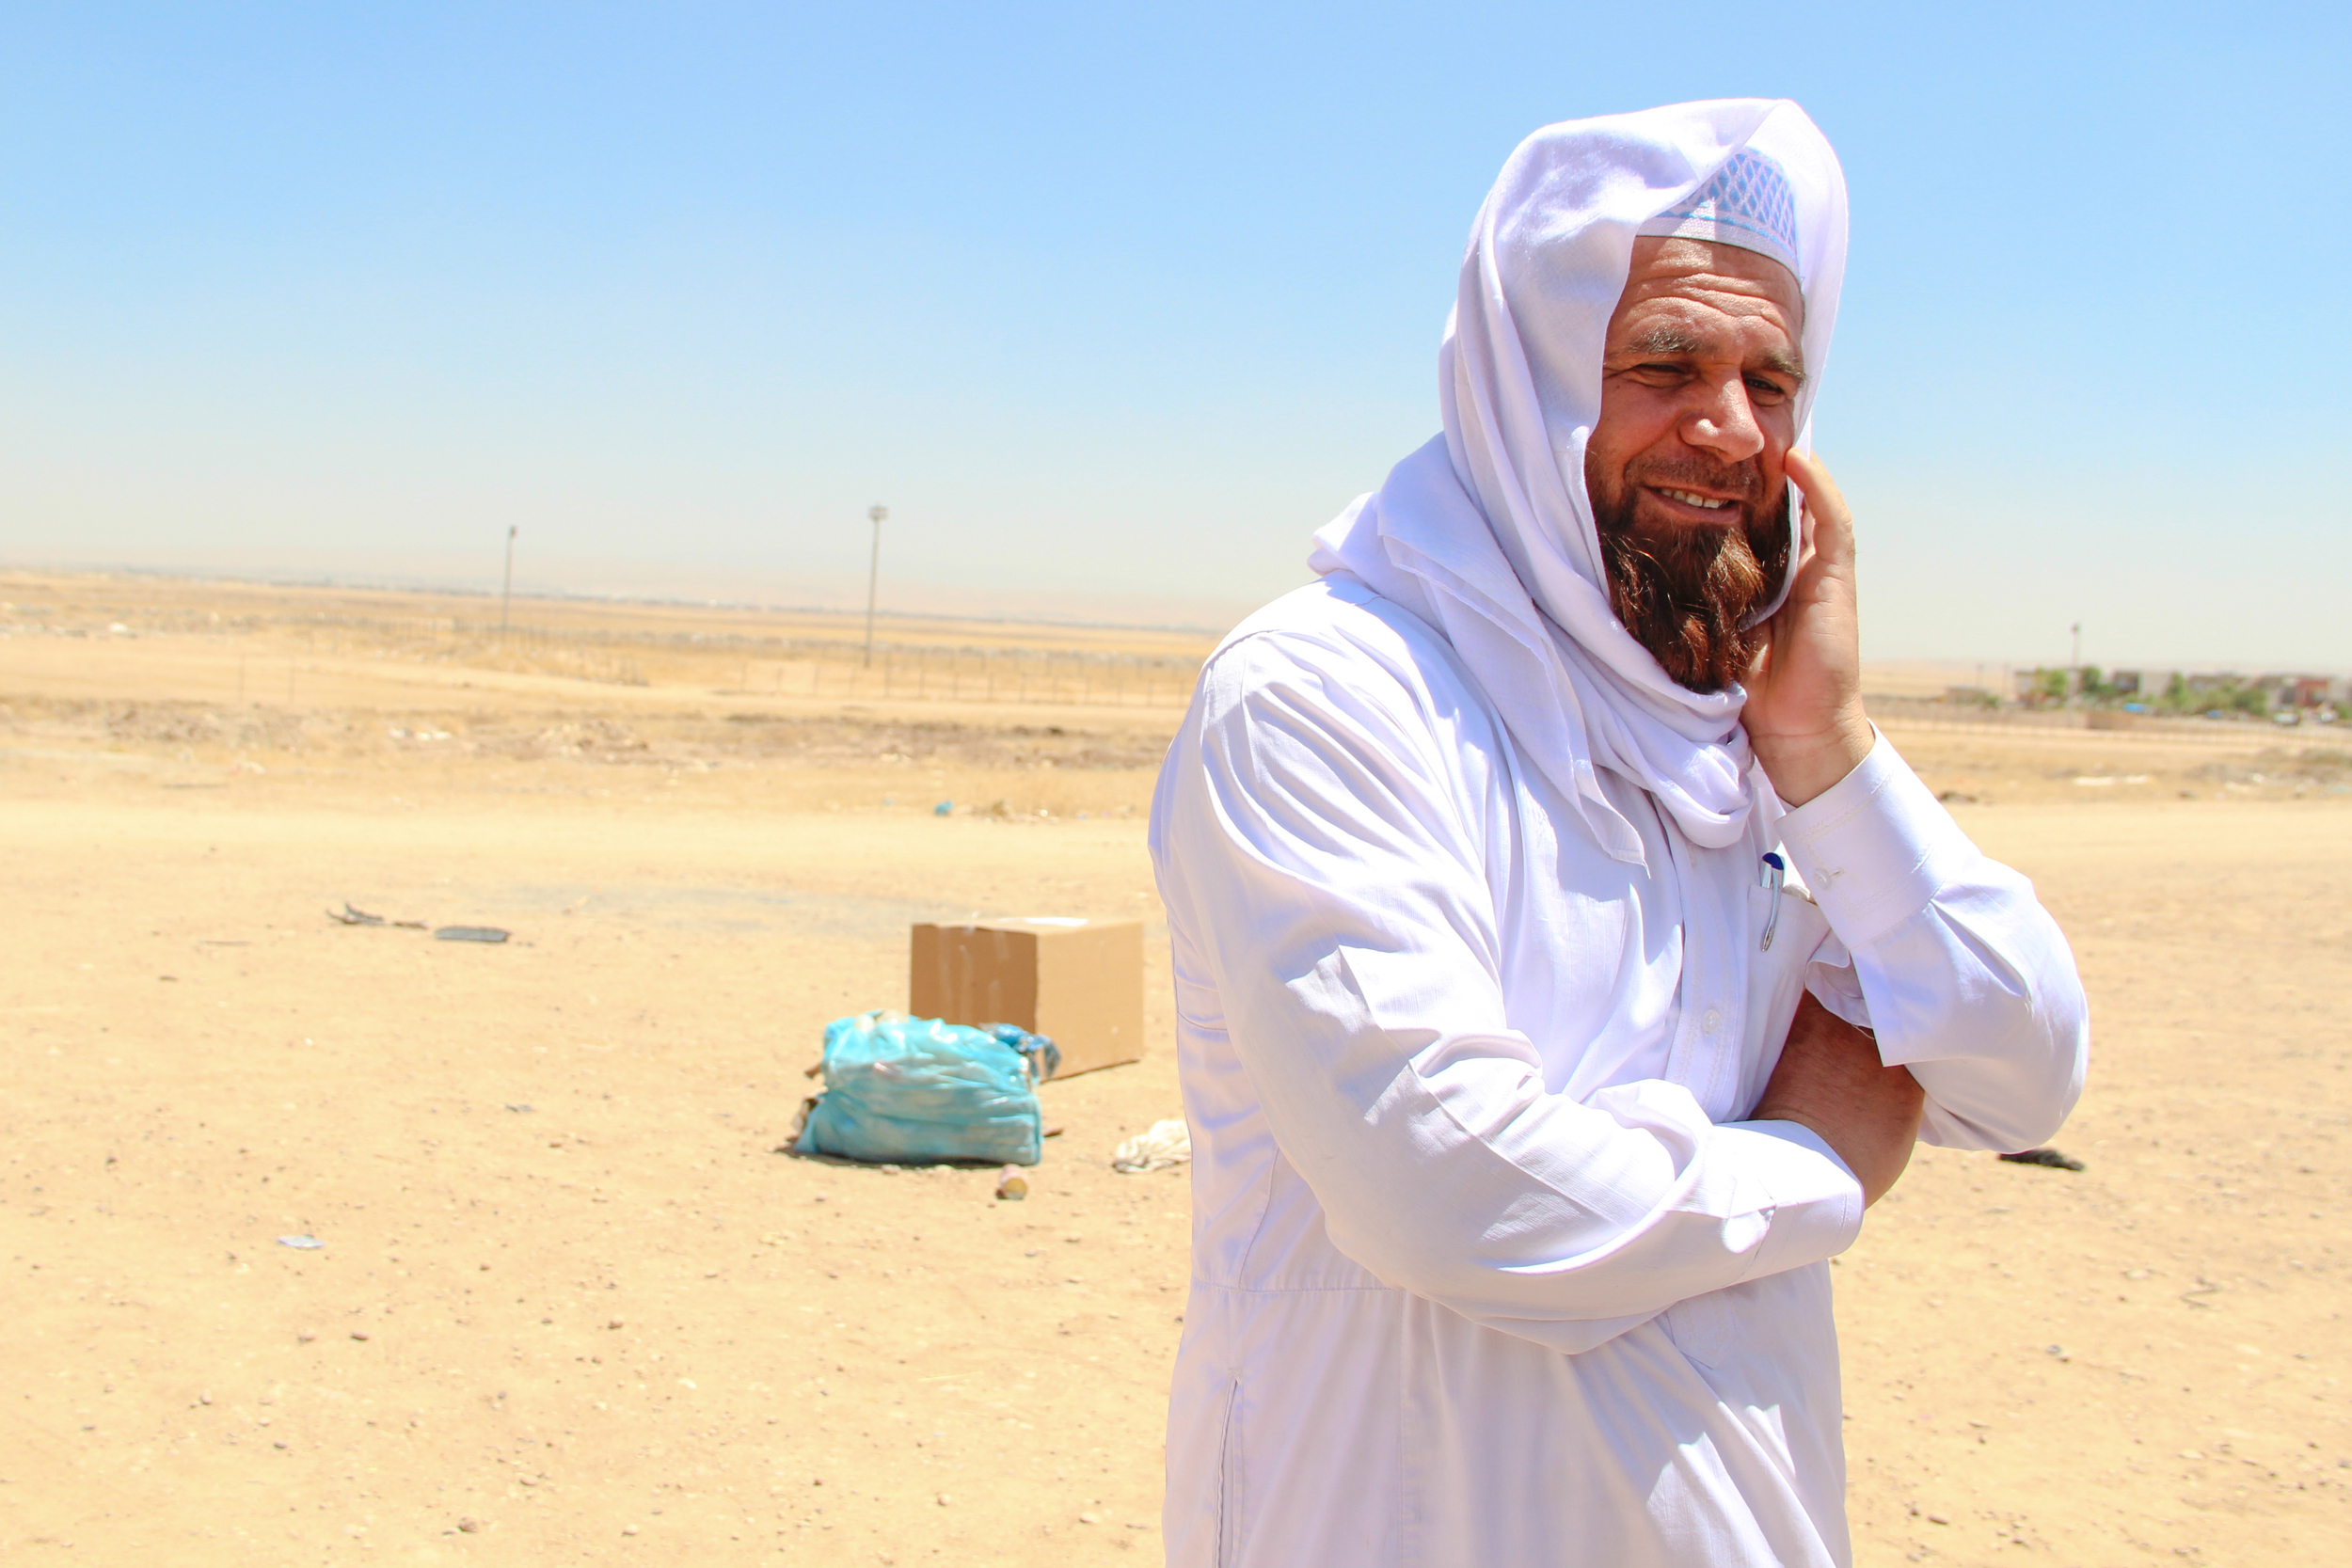 An imam who serves his local community in Erbil / For the Iraq mission of the International Organization for Migration